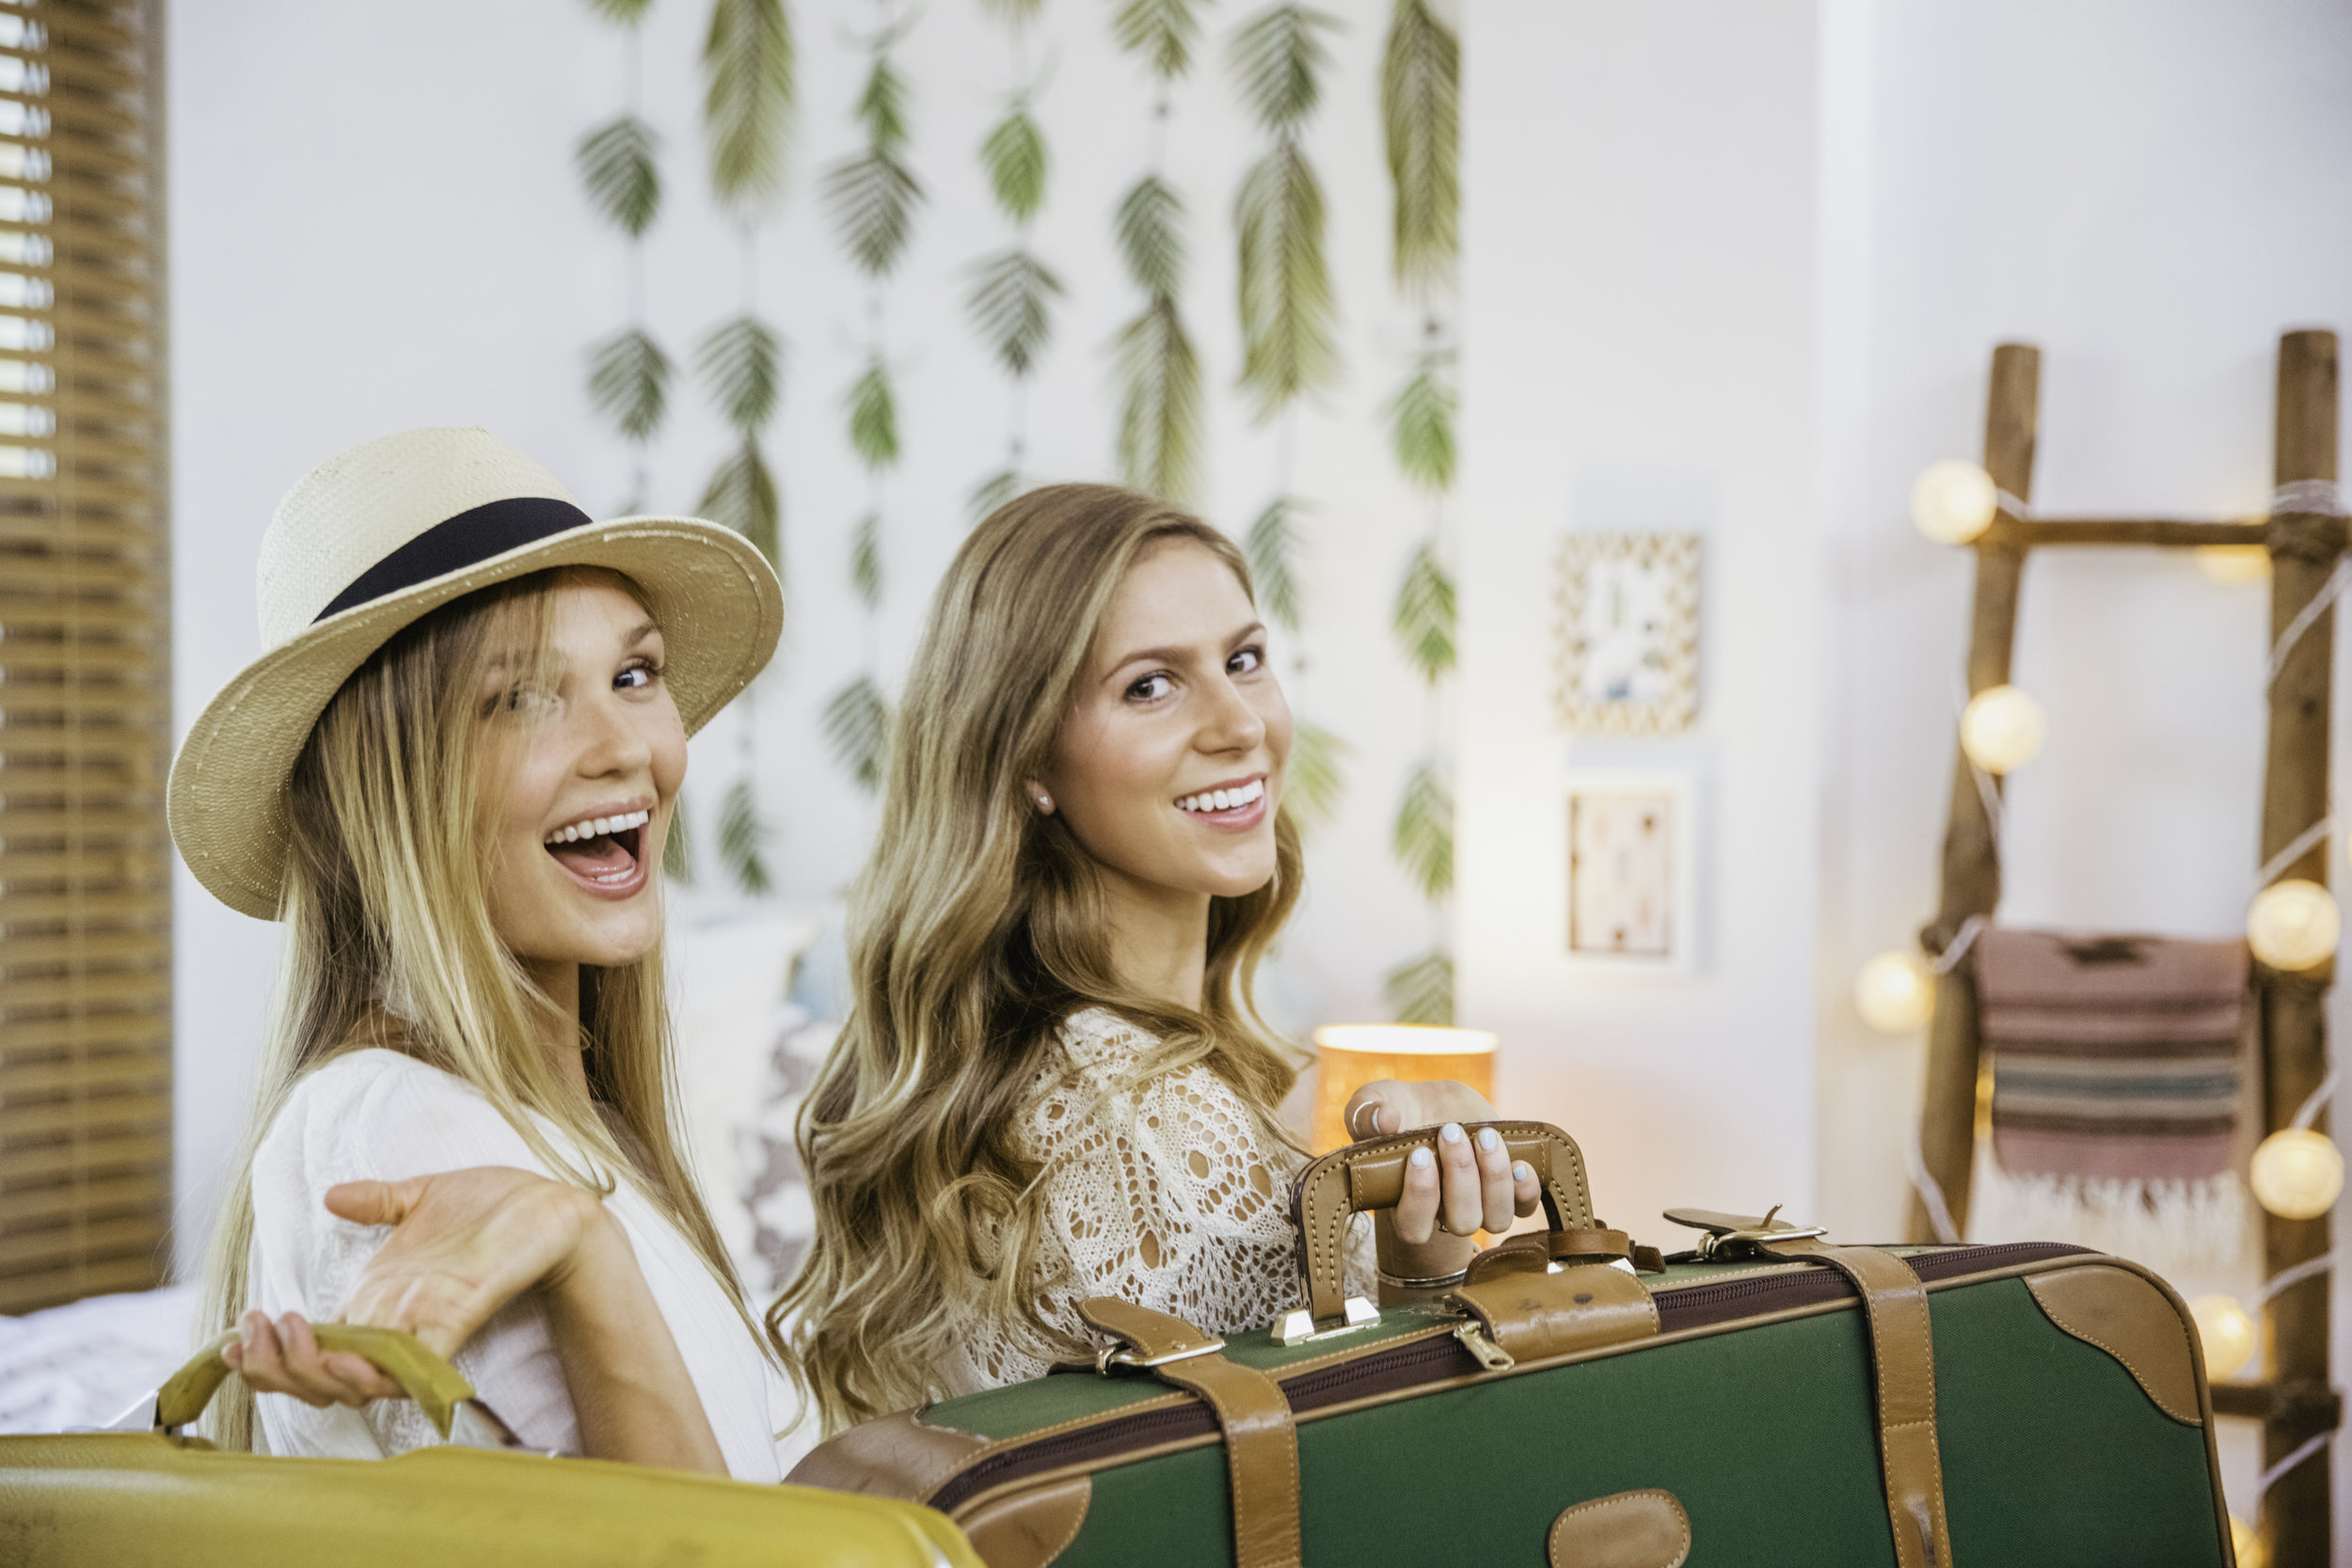 Meet Solia & Emily - These BFFs are finally rooming together. They want their small 130 sq. ft. space to feel like one cohesive and stylish room that reflects their stylish boho-chic tastes.